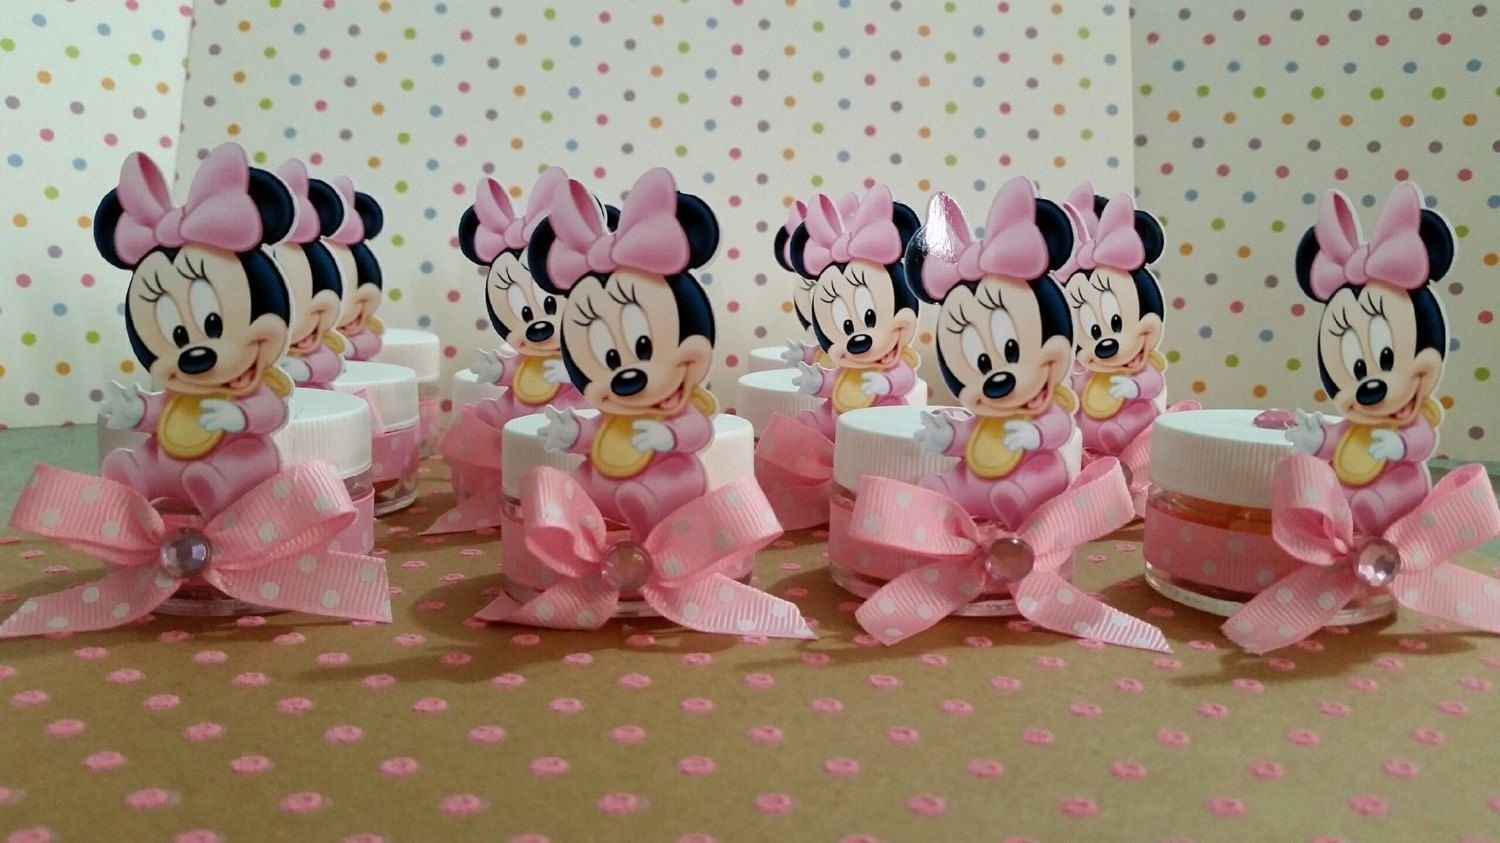 10 Wonderful Baby Minnie Mouse Baby Shower Ideas baby minnie mouse baby shower party favors baby shower favors